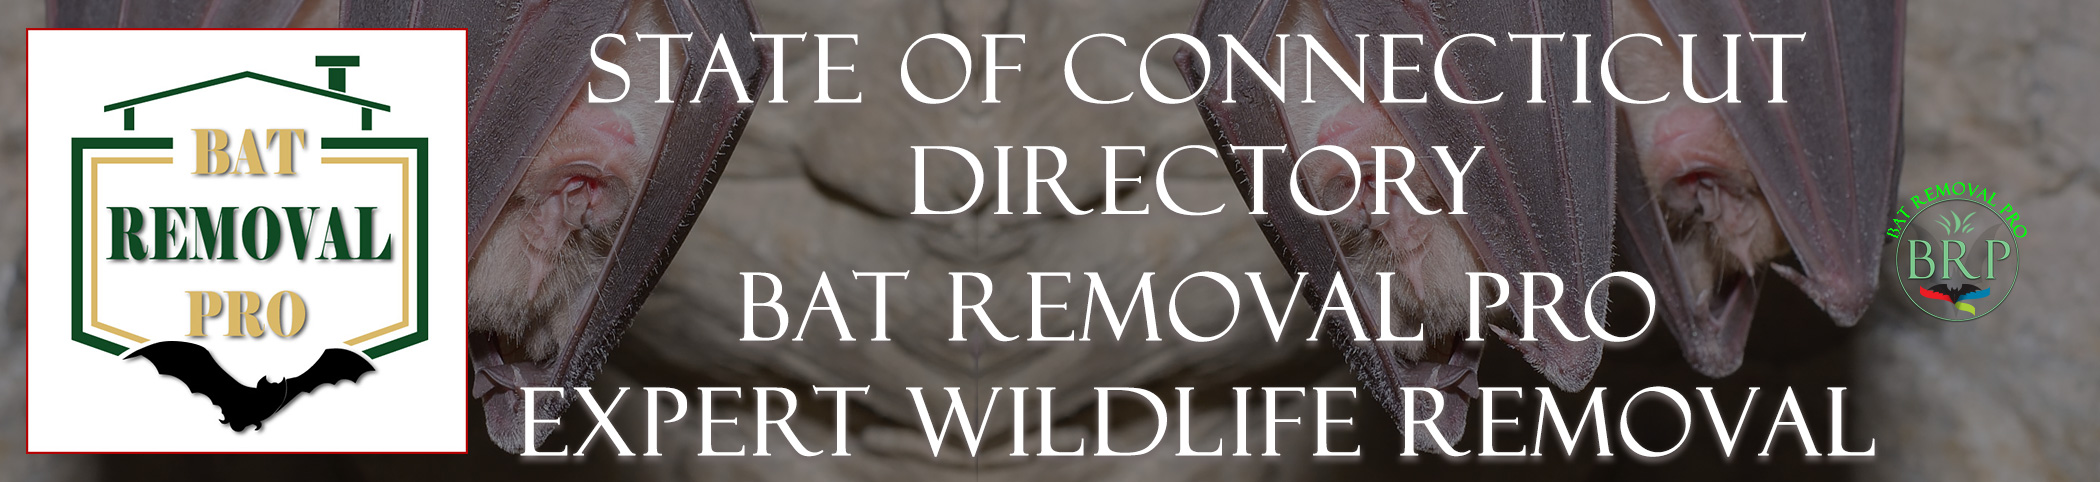 Connecticut Header Image At Bat Removal Pro National Directory of Control, Trapping and Removal Professionals